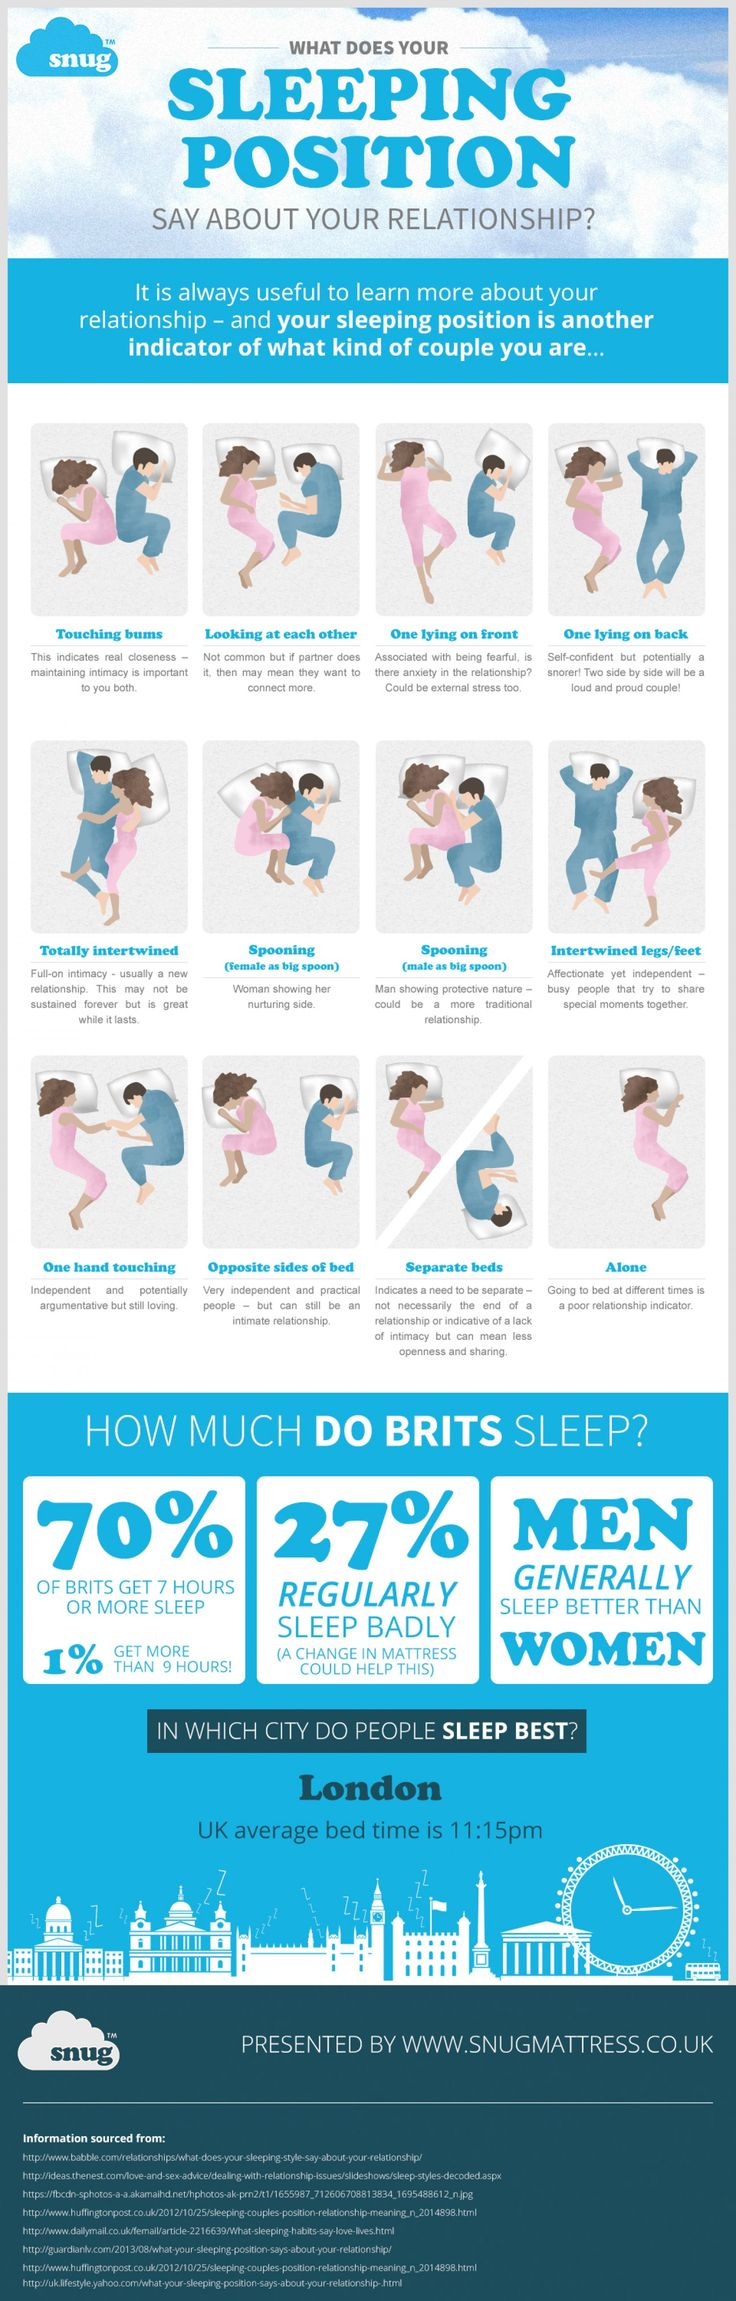 What Does Your Sleeping Position Say About Your Relationship?  #Infographic